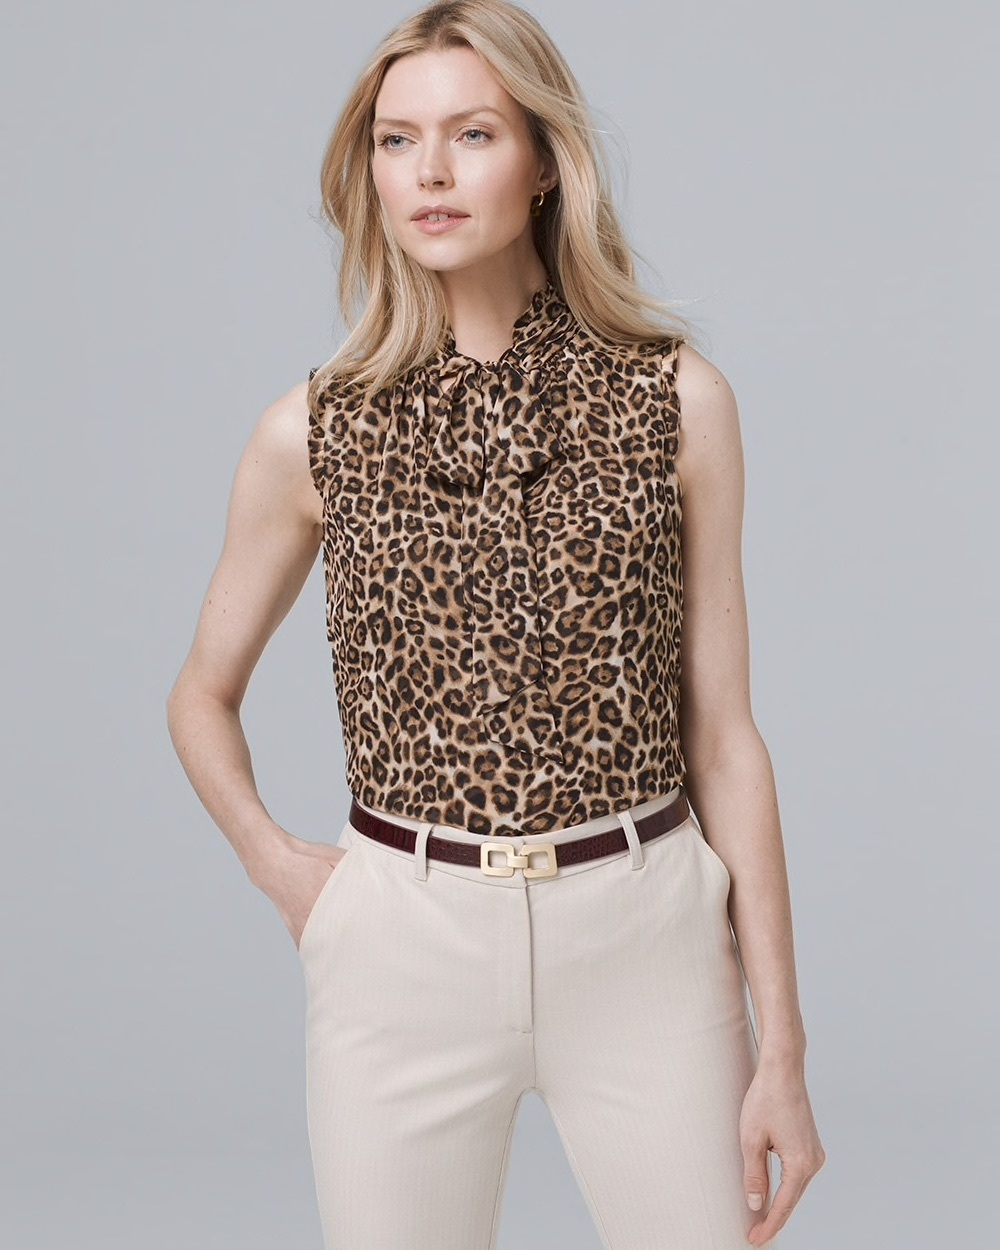 Leopard shell top